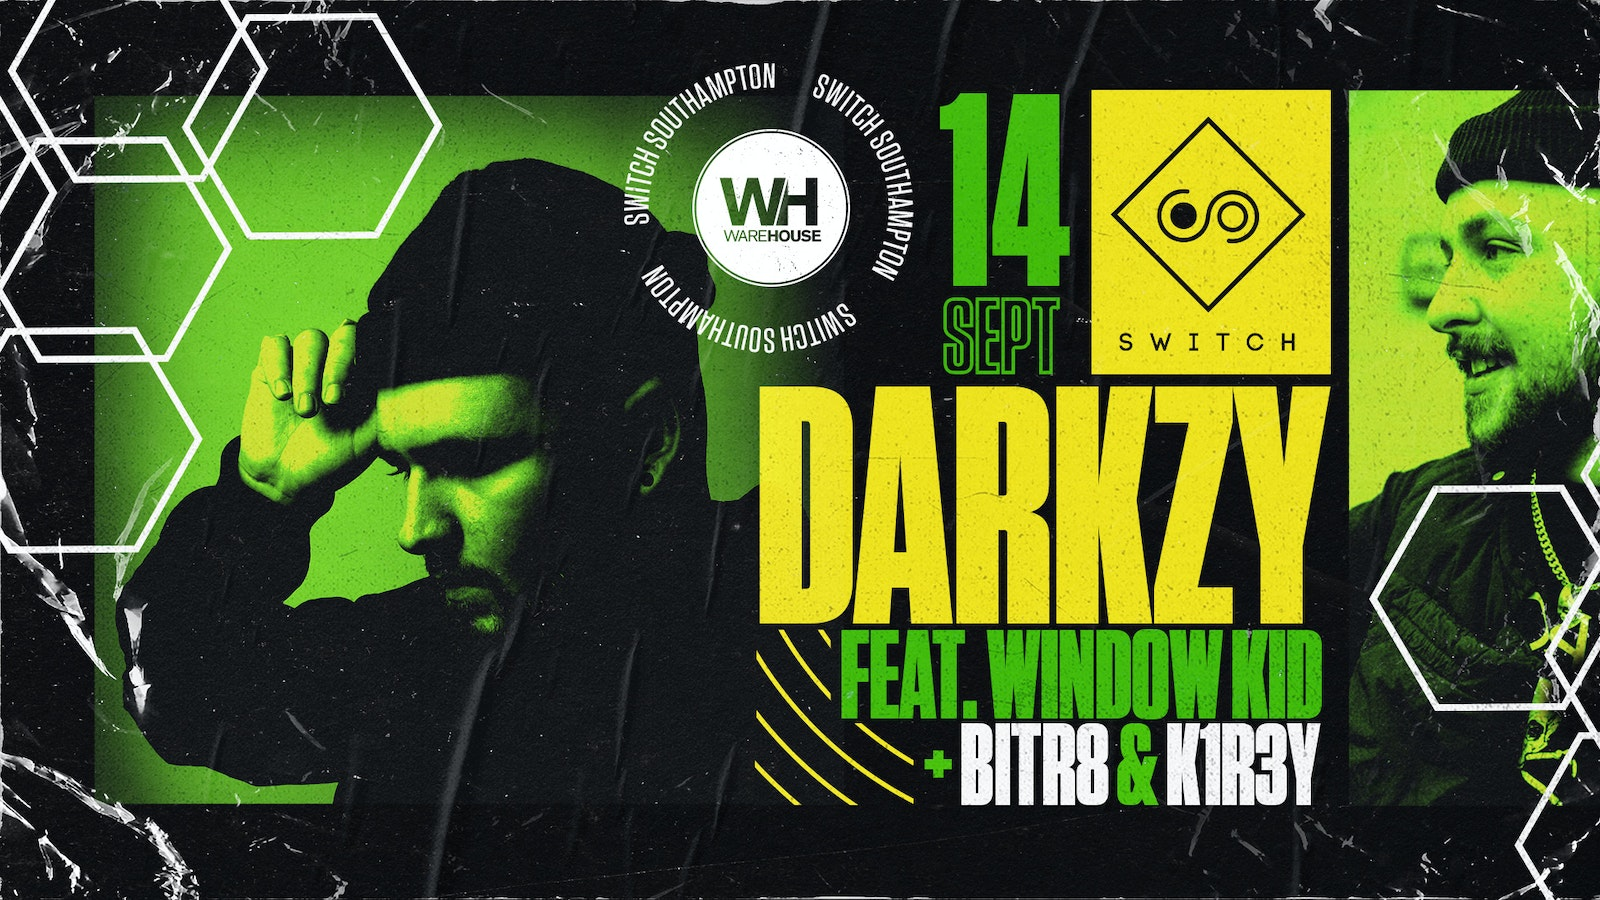 Warehouse Presents: Darkzy feat. Window Kid